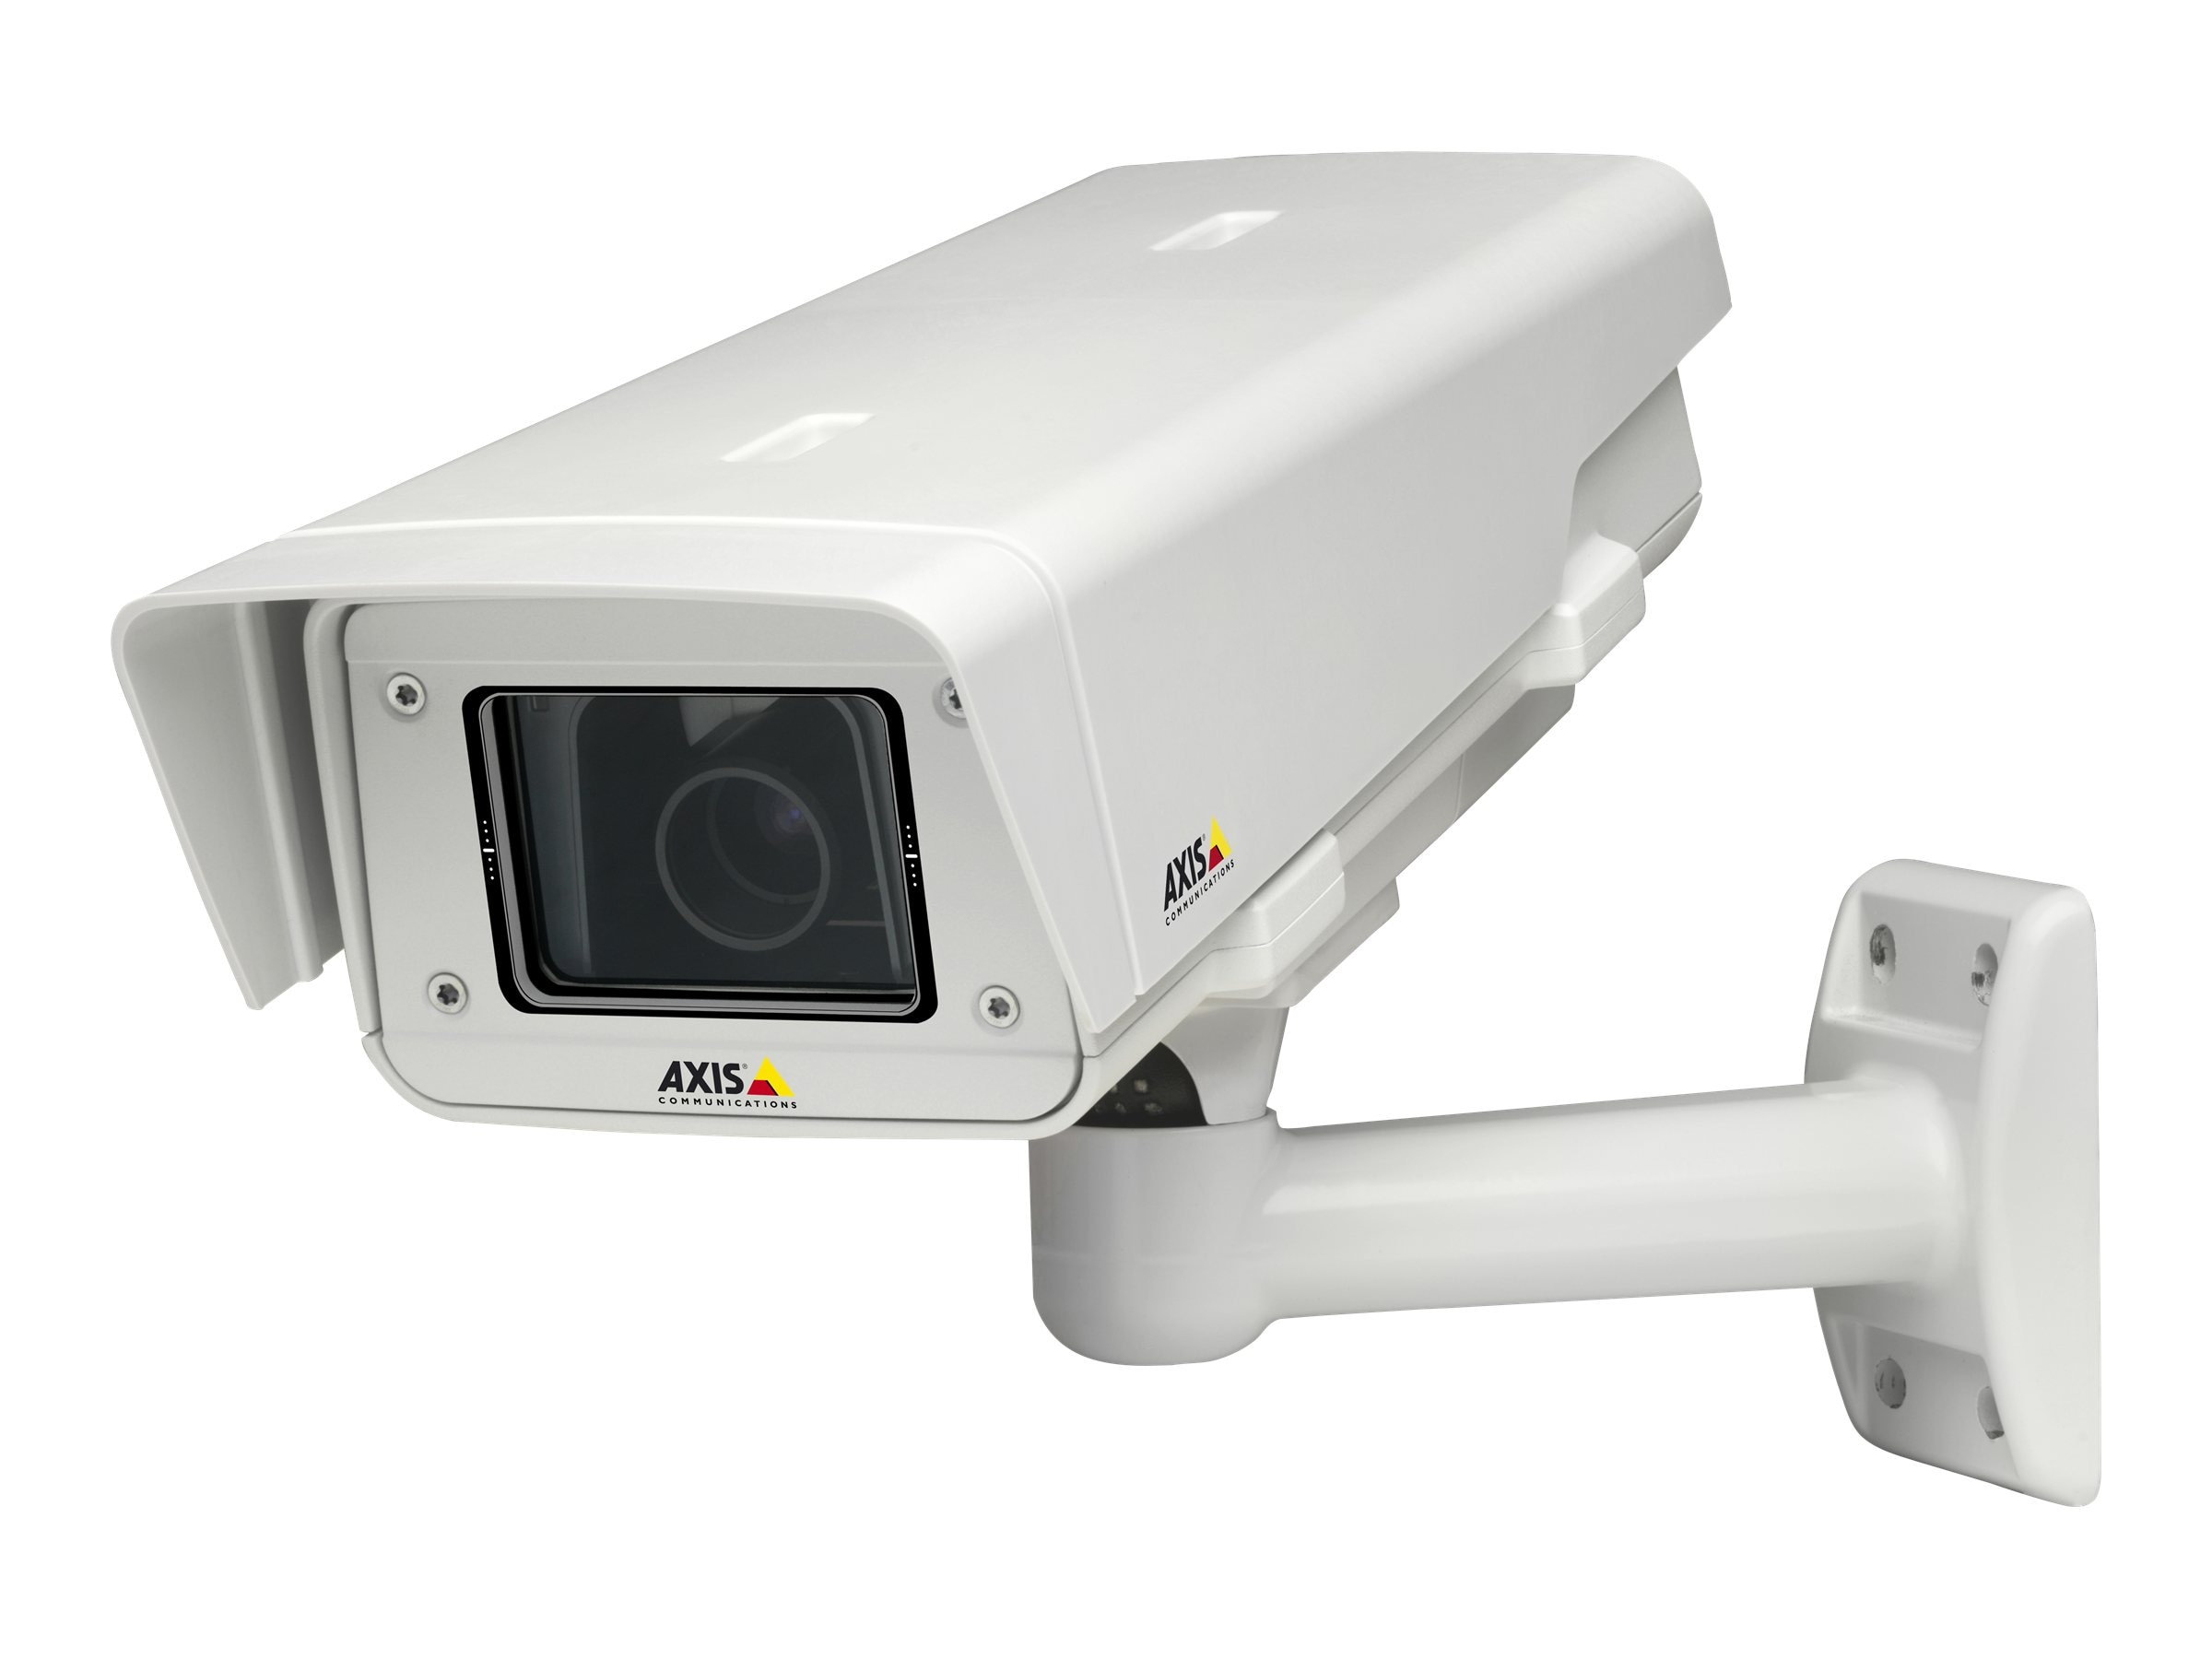 Axis P1354-E Outdoor Fixed Network Camera, 0528-001, 15143506, Cameras - Security